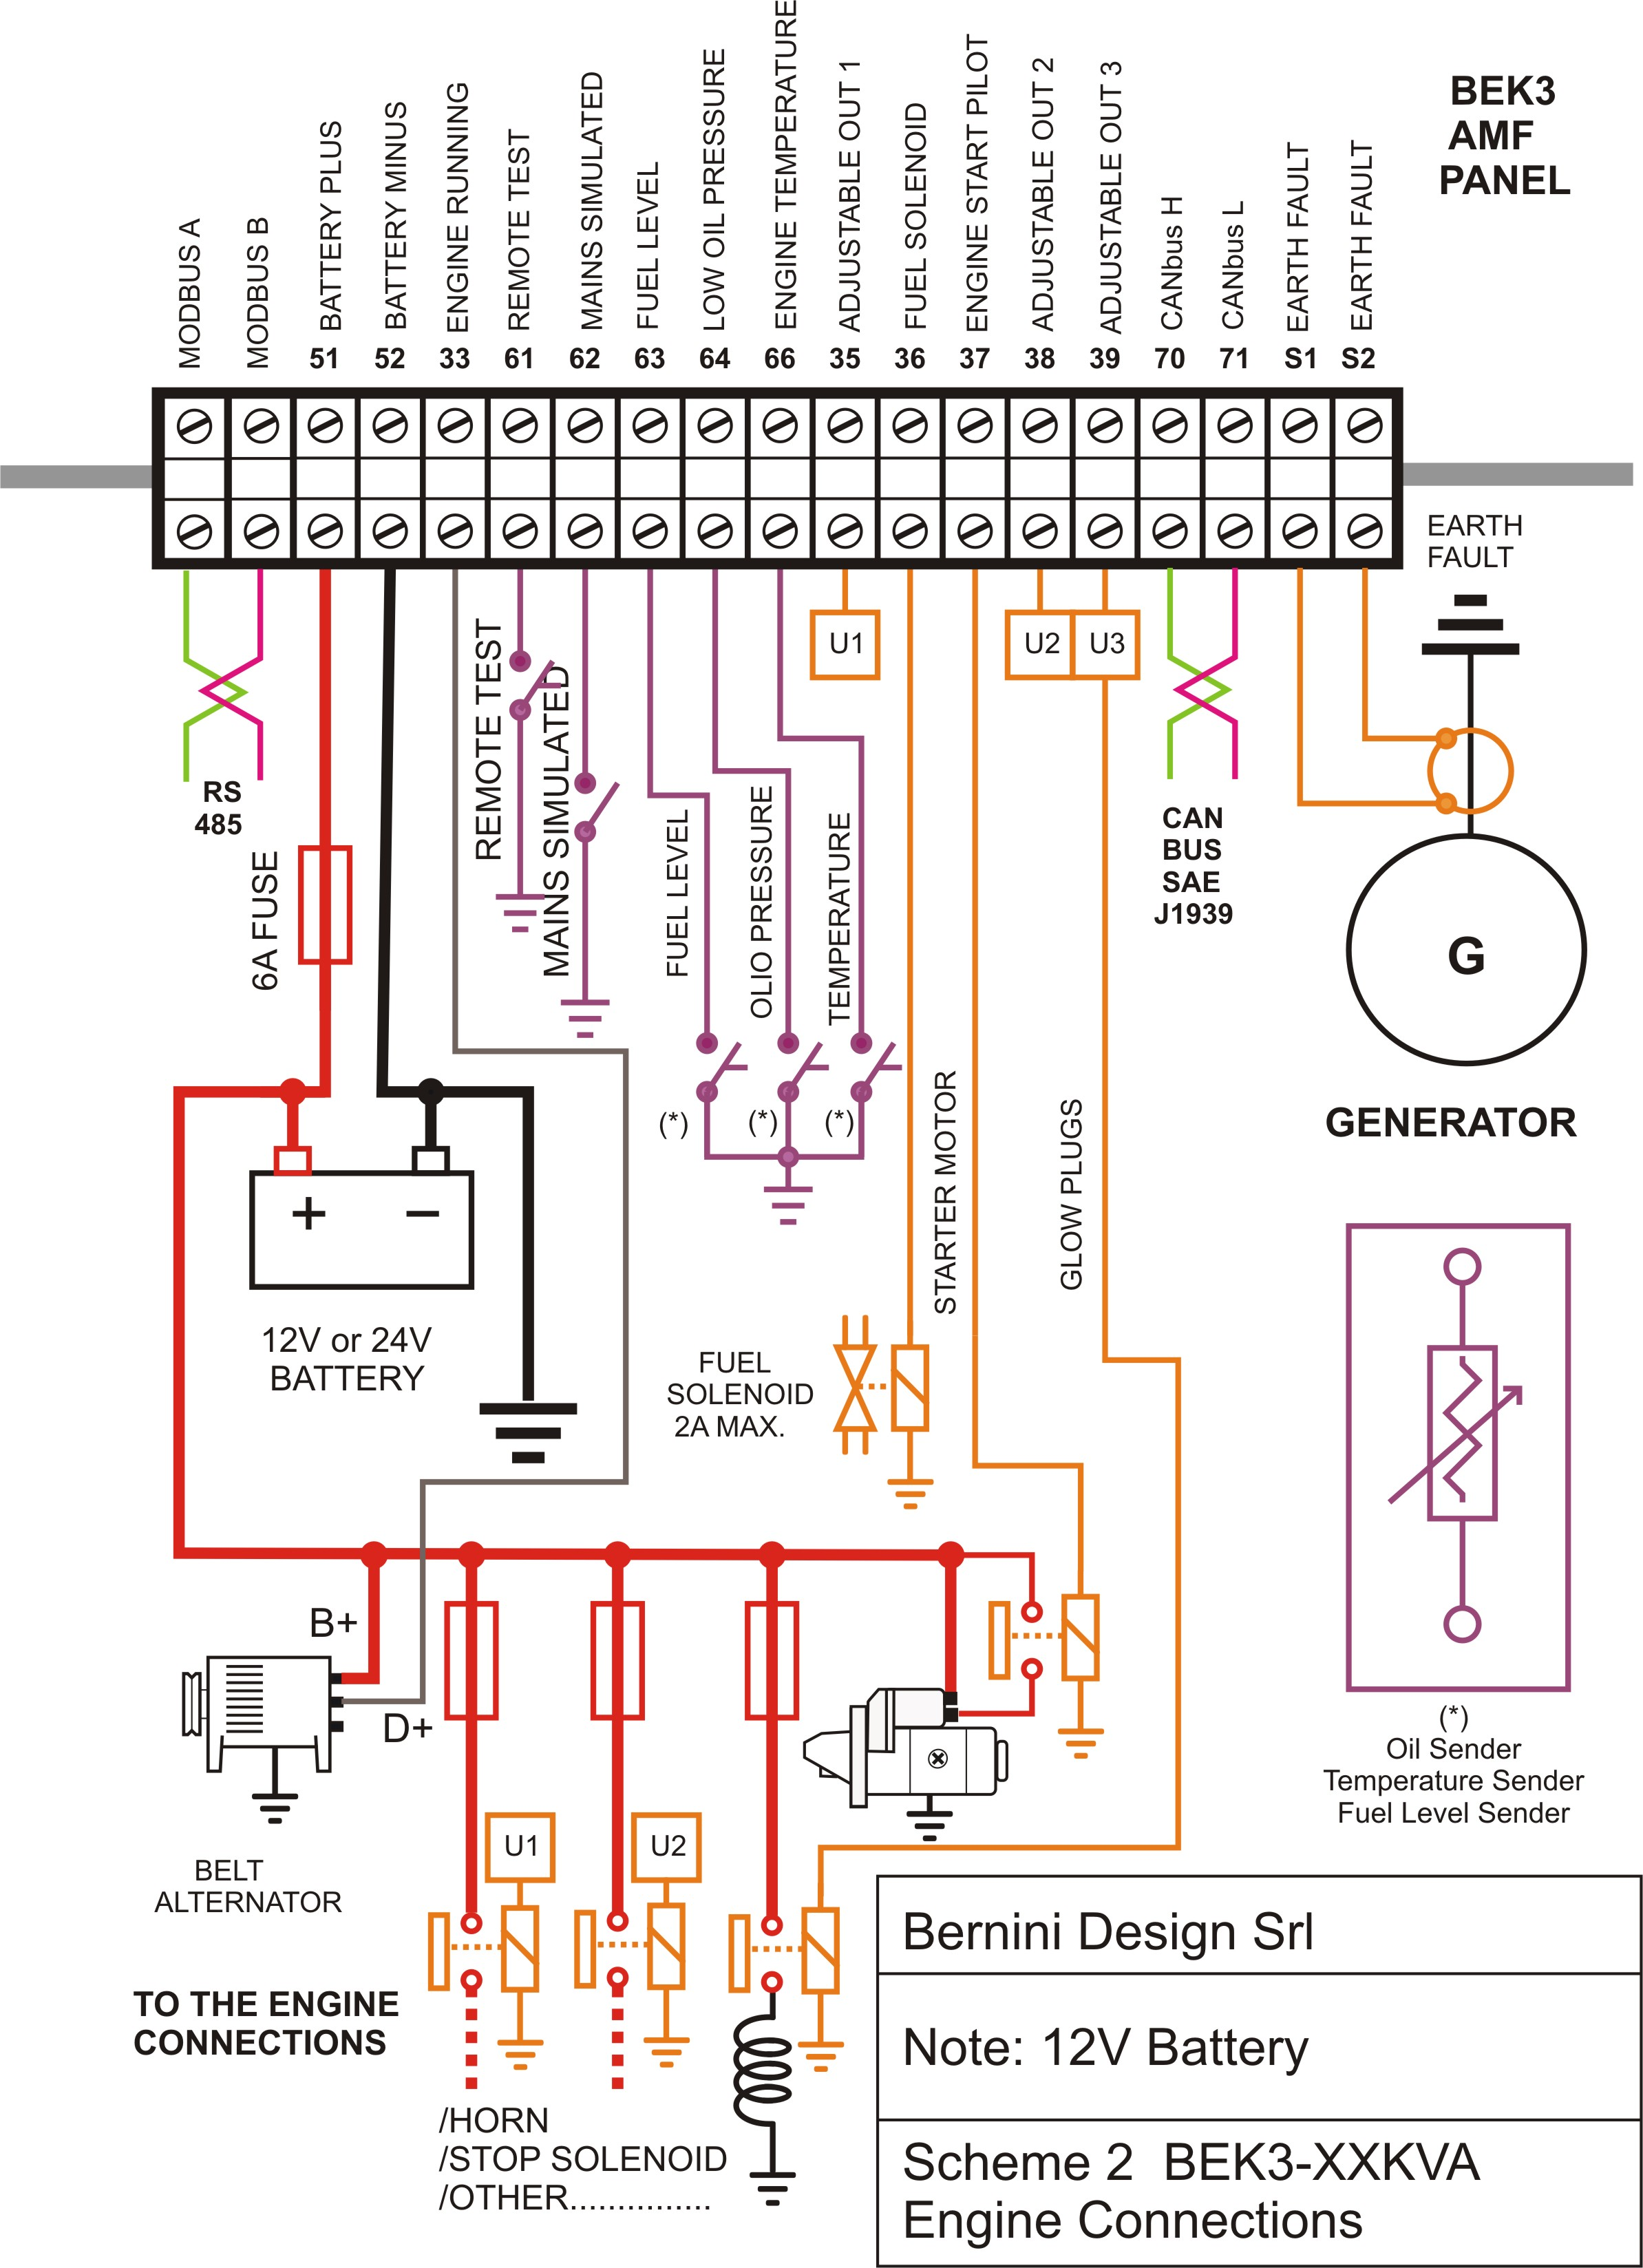 Diesel Generator Control Panel Wiring Diagram Engine Connections1 auto mains failure control panel genset controller controller wire diagram for 3246e2 lift at metegol.co